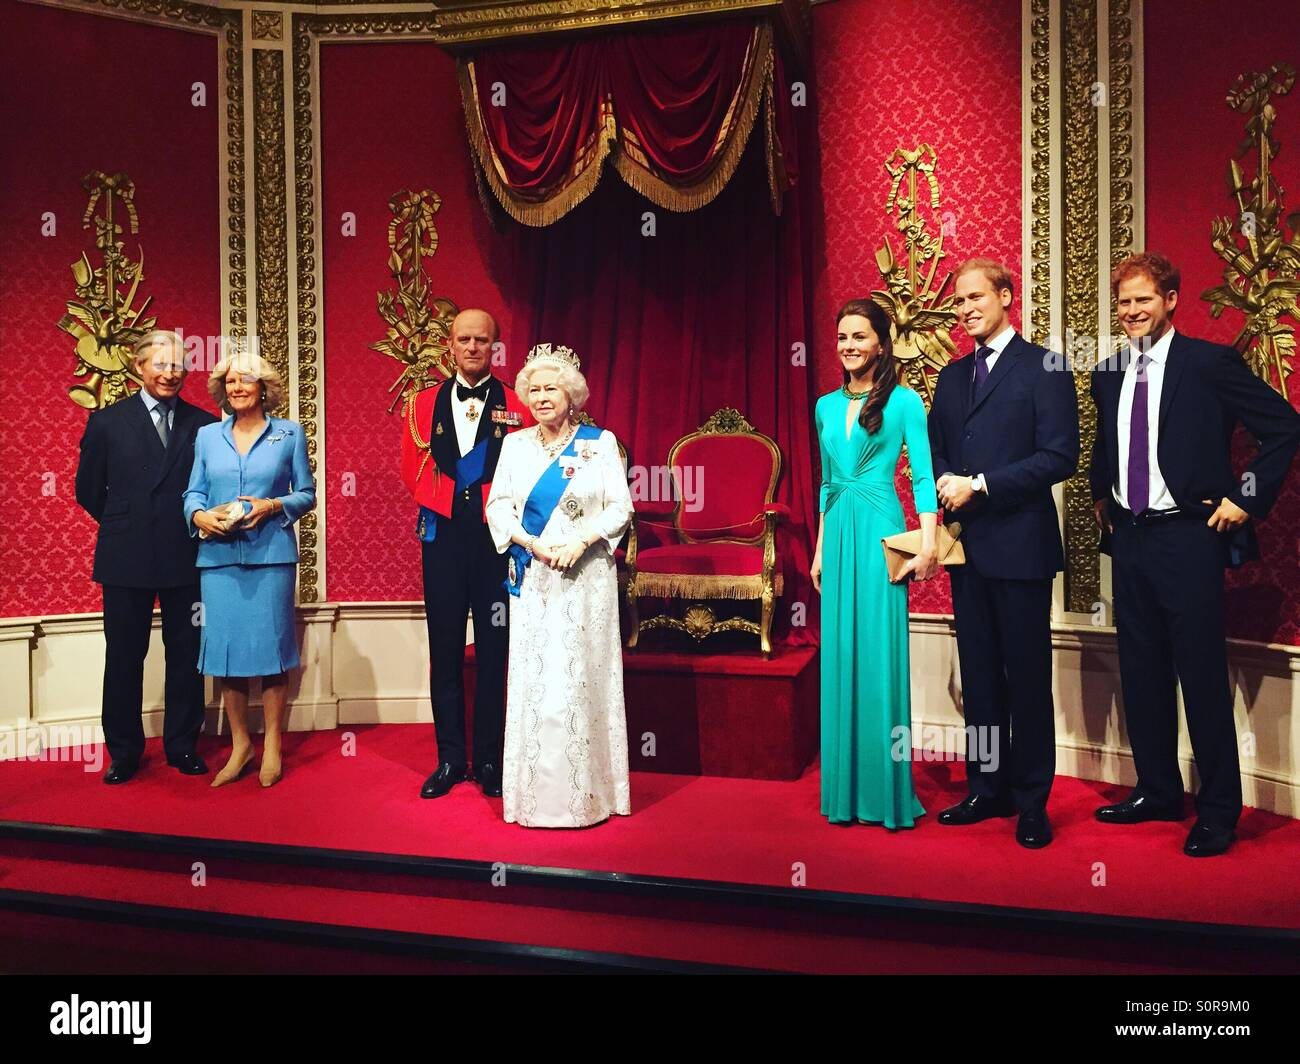 The wax figurines of the Royal Family at Madame Tussaud's, London. - Stock Image